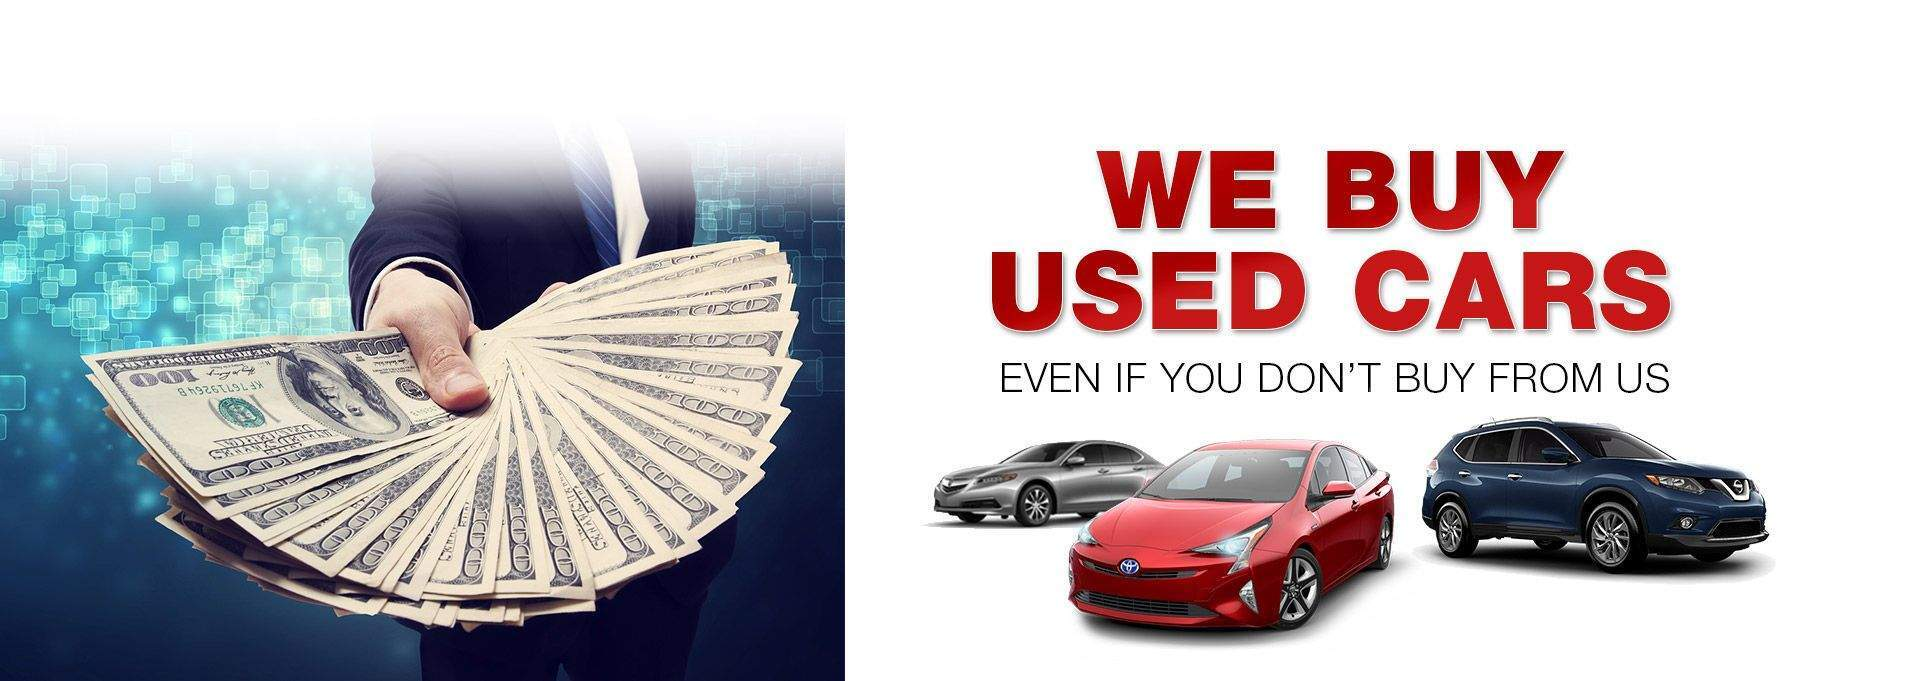 We Buy Used Cars - Are You Selling?